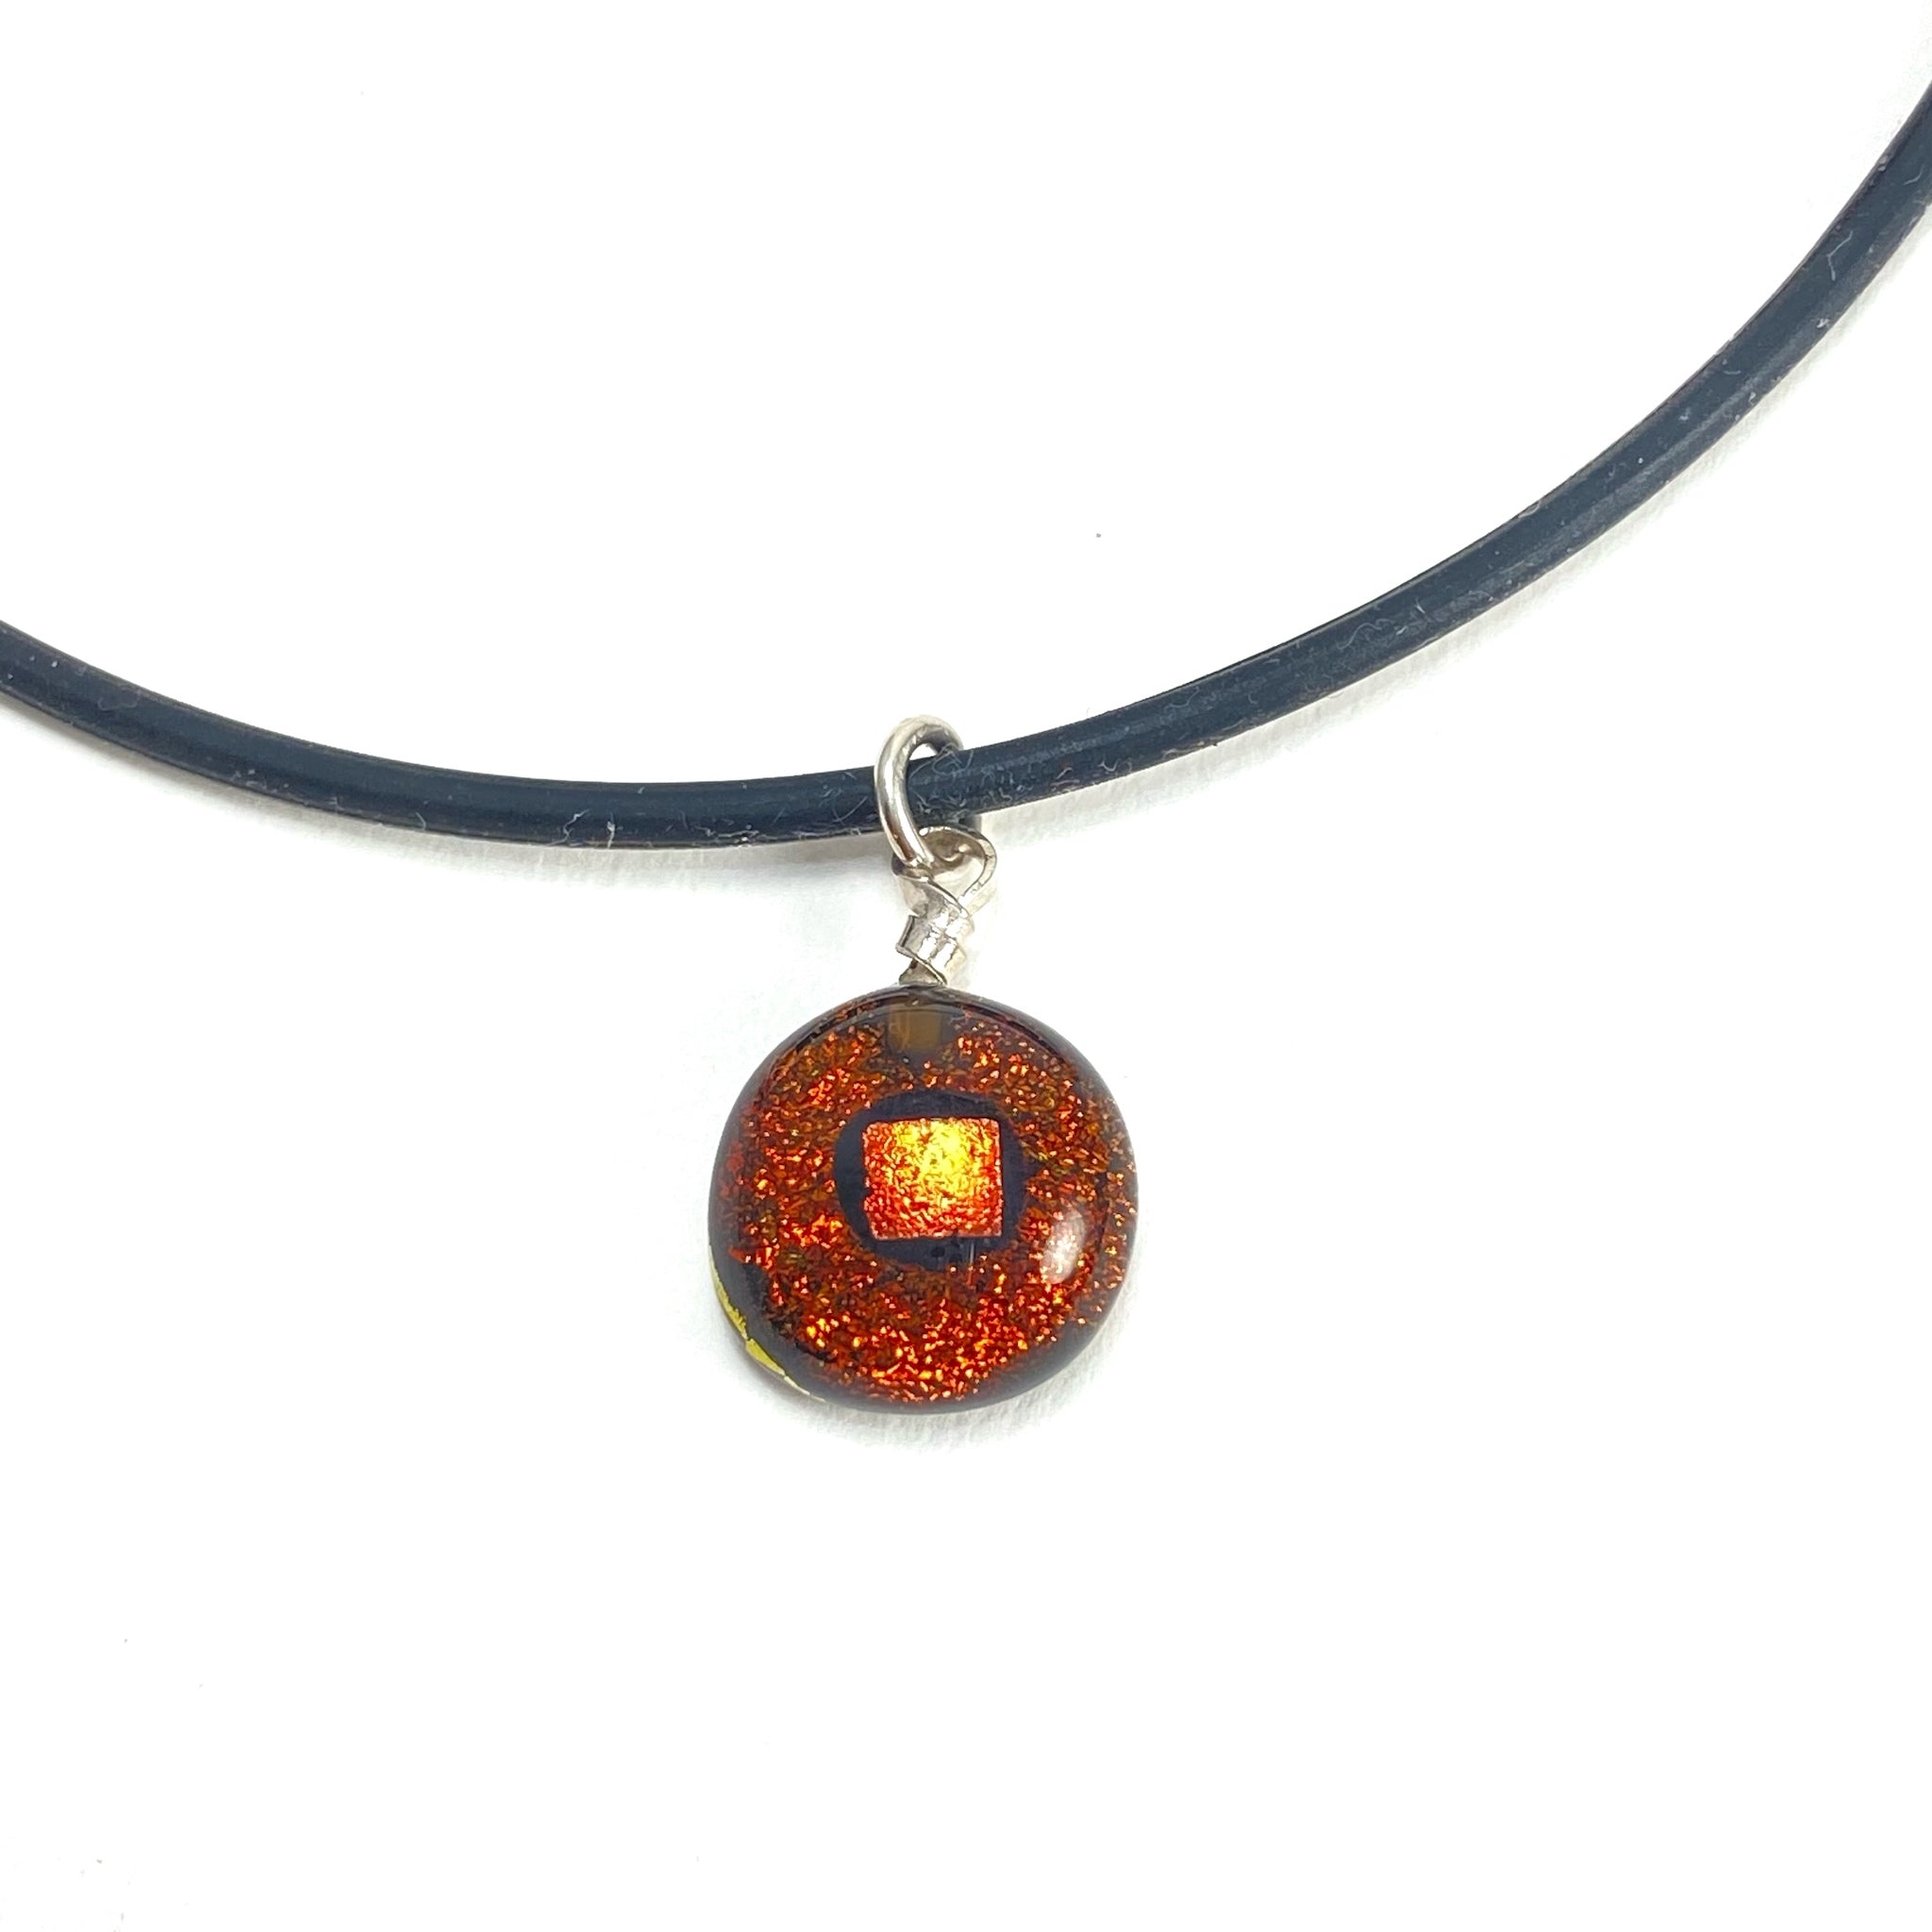 copper gold necklace, fused glass, glass jewelry, glass and silver jewelry, handmade, handcrafted, American Craft, hand fabricated jewelry, hand fabricated jewellery,  Athen, Georgia, colorful jewelry, sparkle, bullseye glass, dichroic glass, art jewelry